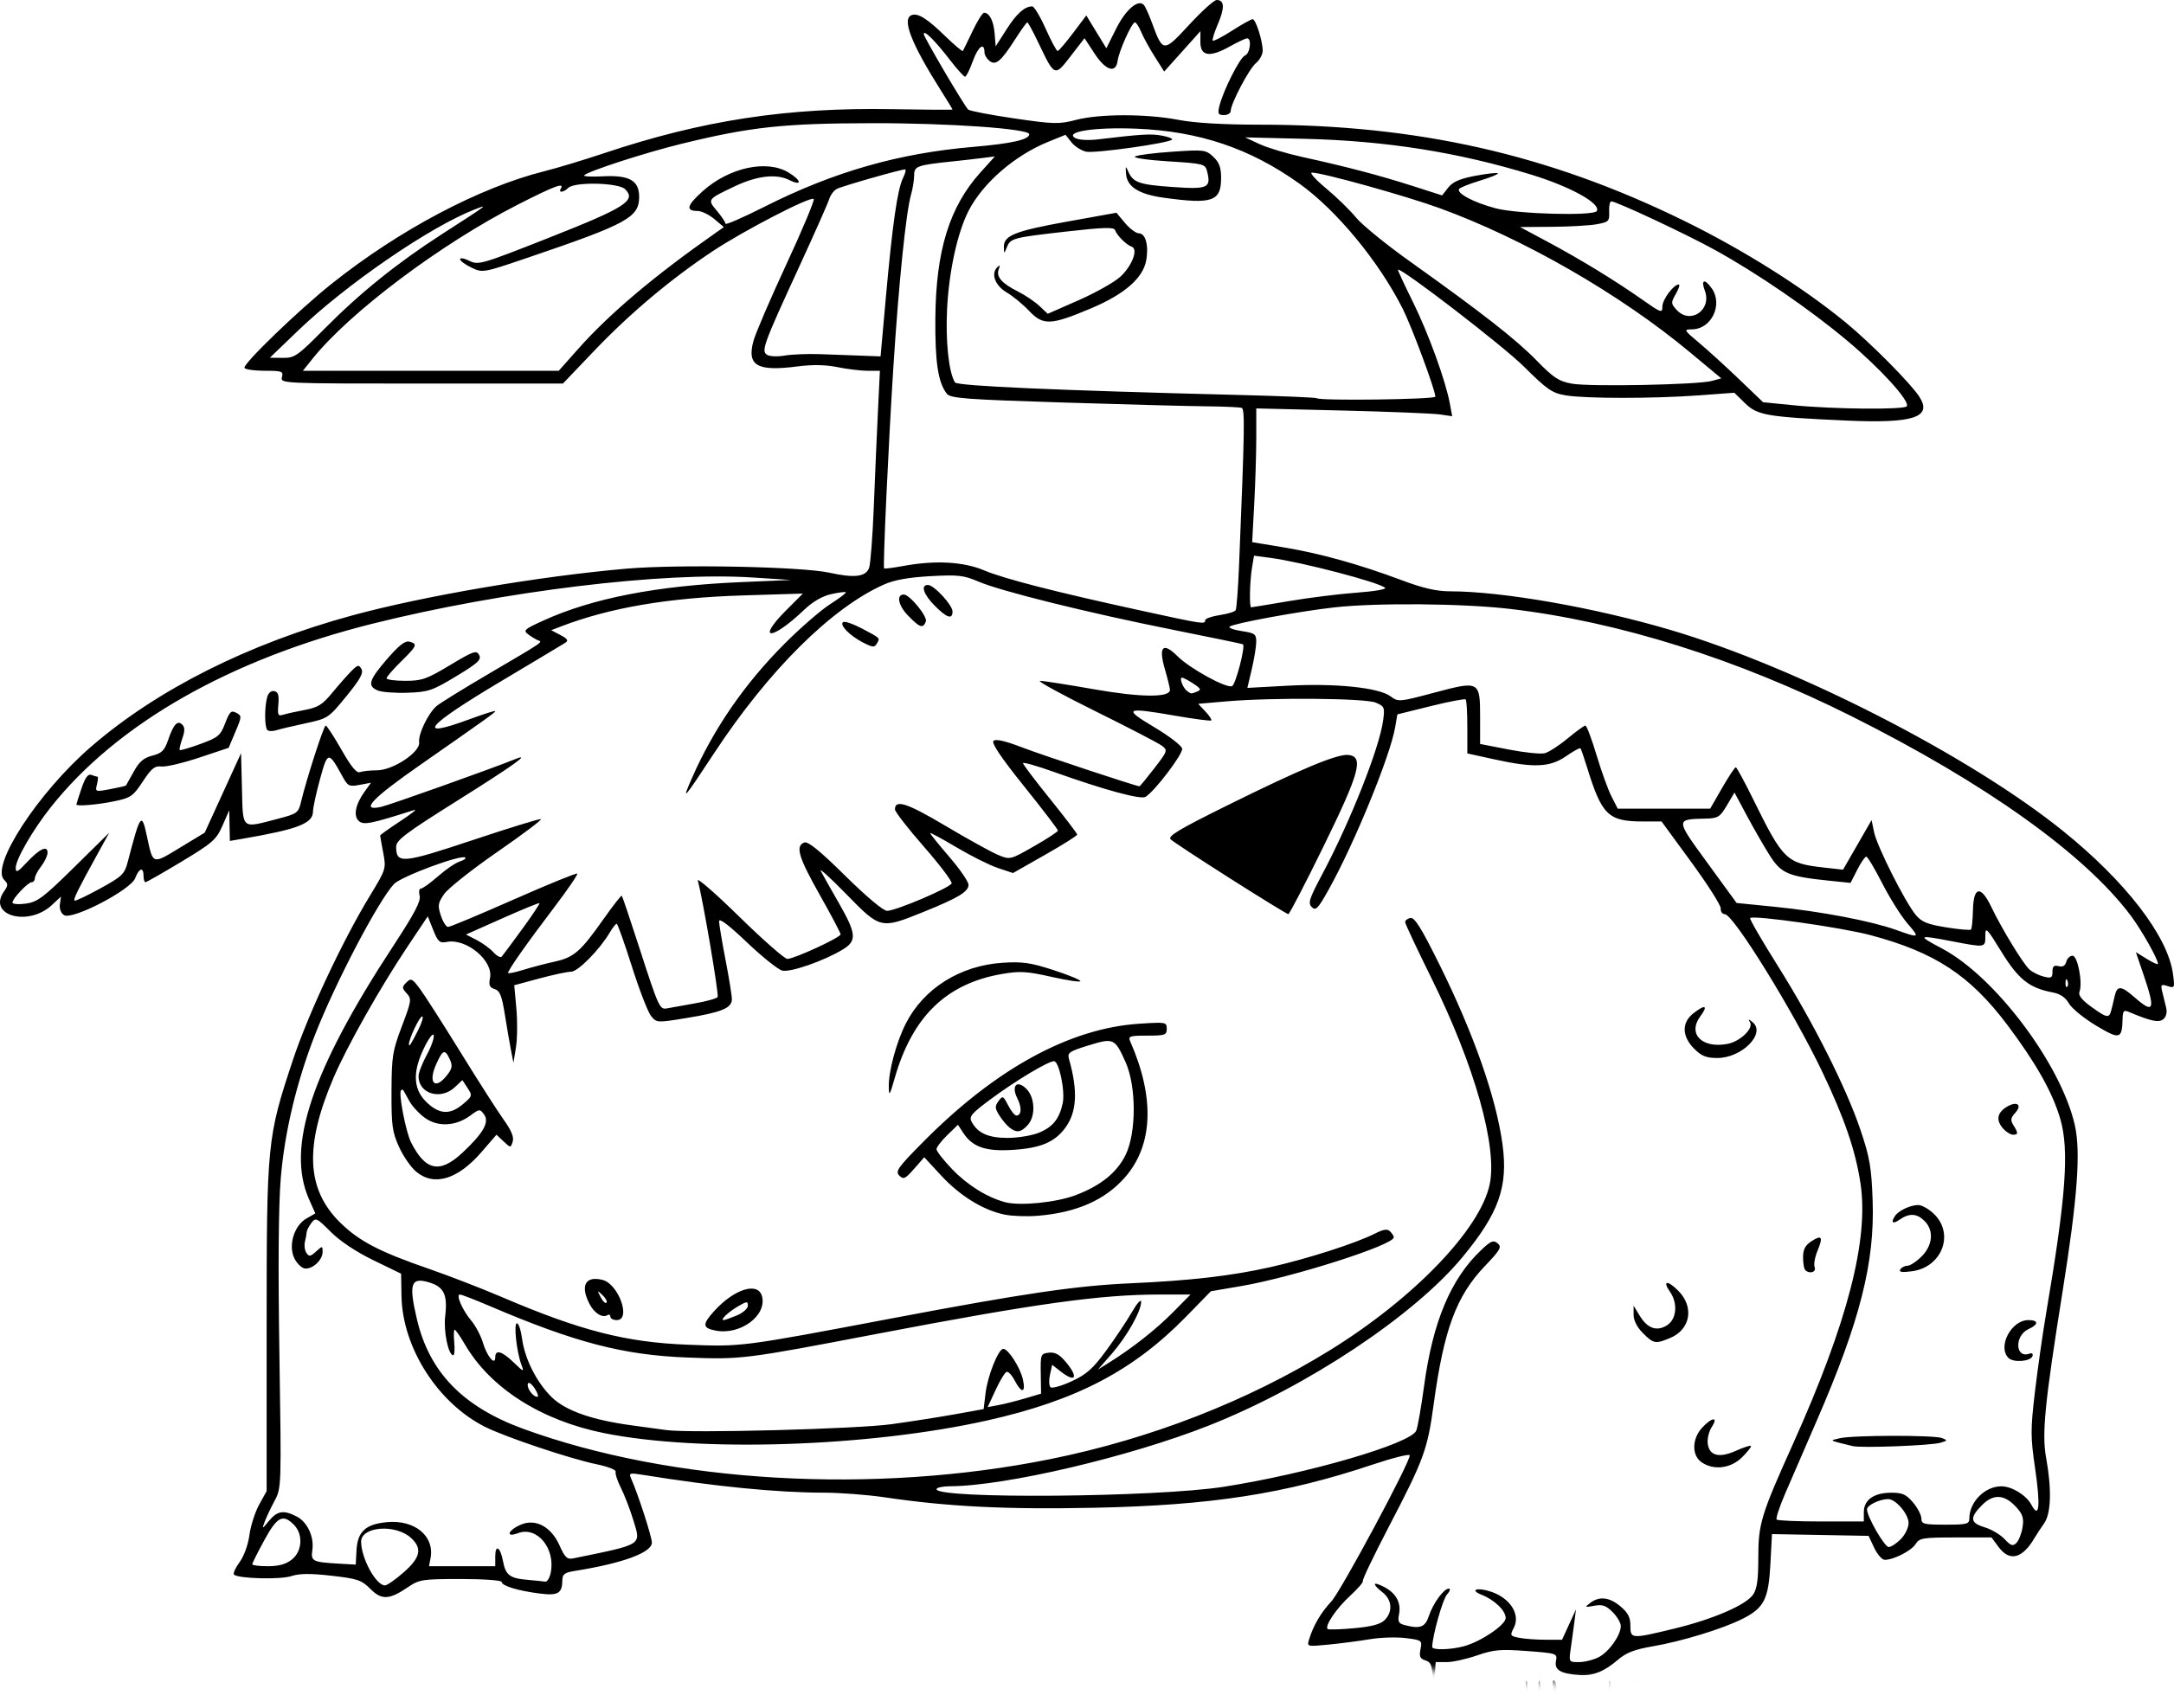 crocodile coloring pages - florizarre pokemon go